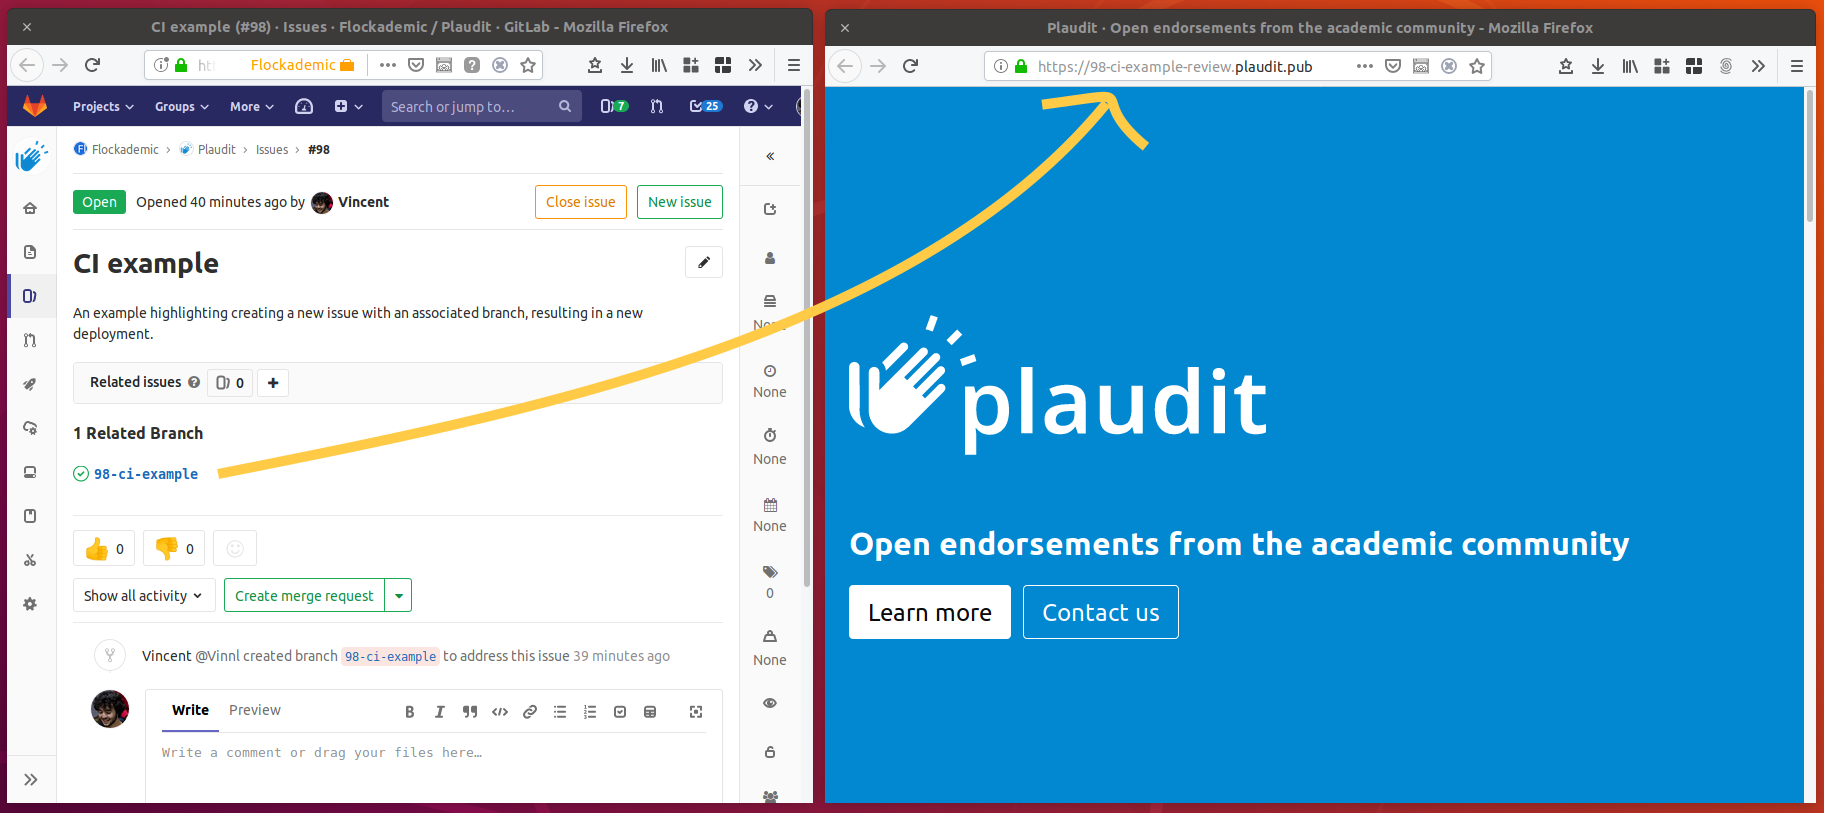 Screenshot of the Plaudit website deployed to https://98-ci-example-review.plaudit.pub, next to the Issue it was created for.